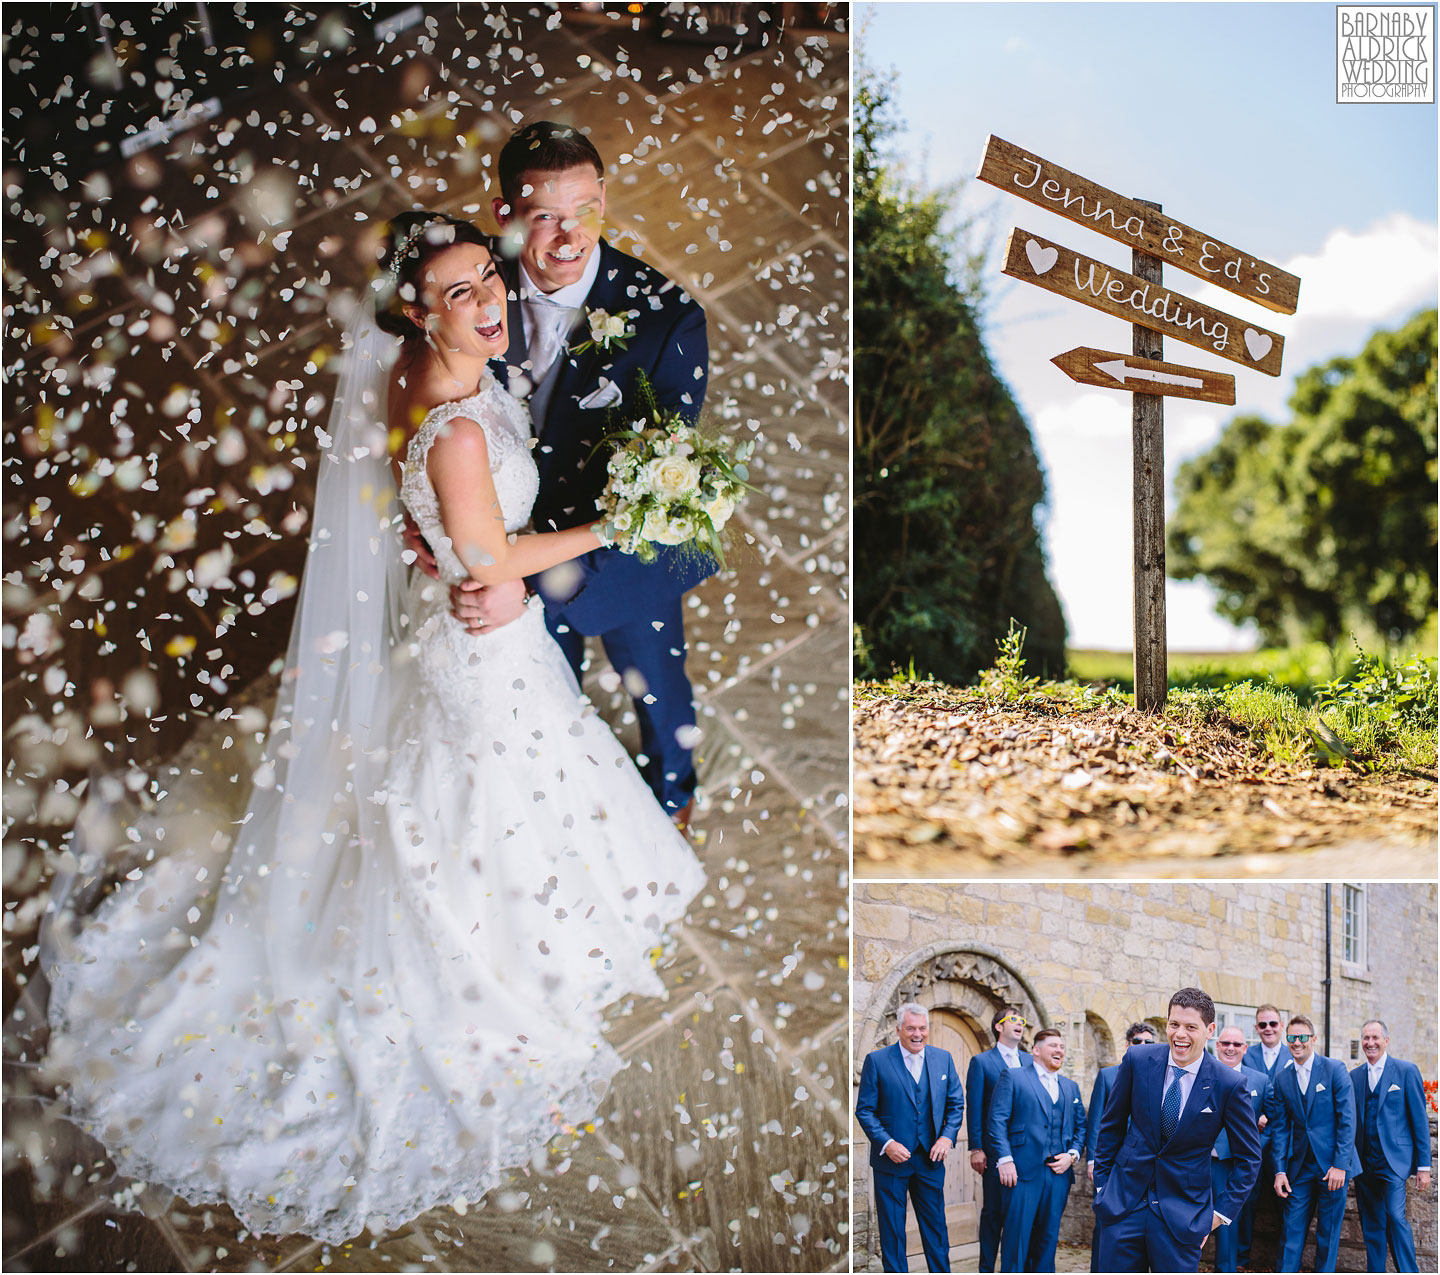 Wedding Ideas Yorkshire: Wedding Photos At Priory Cottages Near Wetherby: Ideas